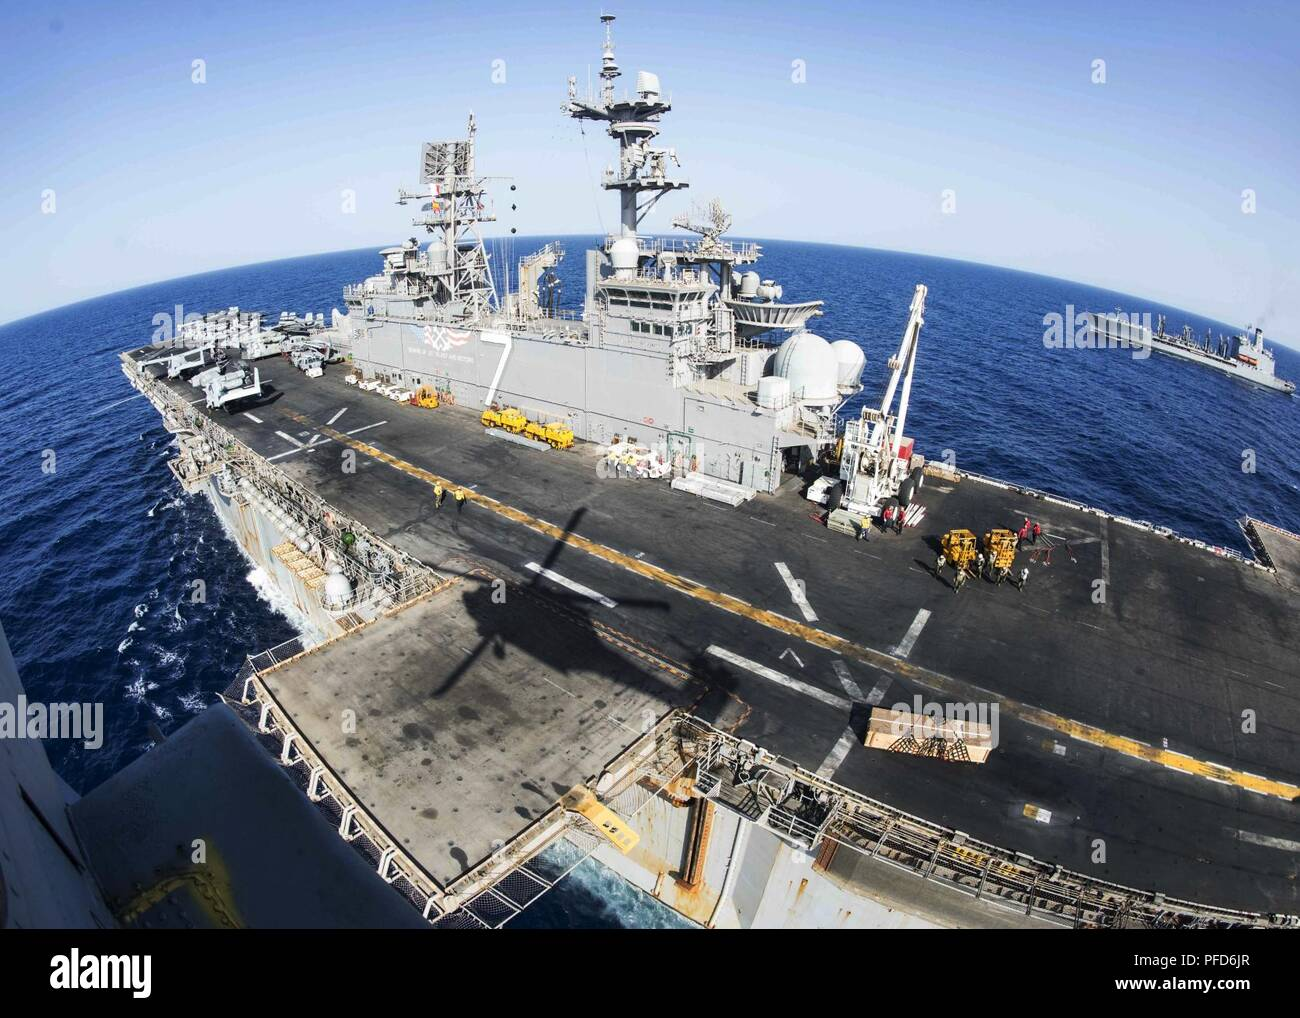 5TH FLEET AREA OF OPERATIONS (June 8, 2018) The Wasp-class amphibious assault ship USS Iwo Jima (LHD 7), front, conducts a replenishment-at-sea with the fleet replenishment oiler USNS Big Horn (T-AO 198), June 8, 2018. Iwo Jima, homeported in Mayport, Fla., is on deployment to the U.S. 5th Fleet area of operations in support of maritime security operations to reassure allies and partners, and preserve the freedom of navigation and the free flow of commerce in the region. Stock Photo